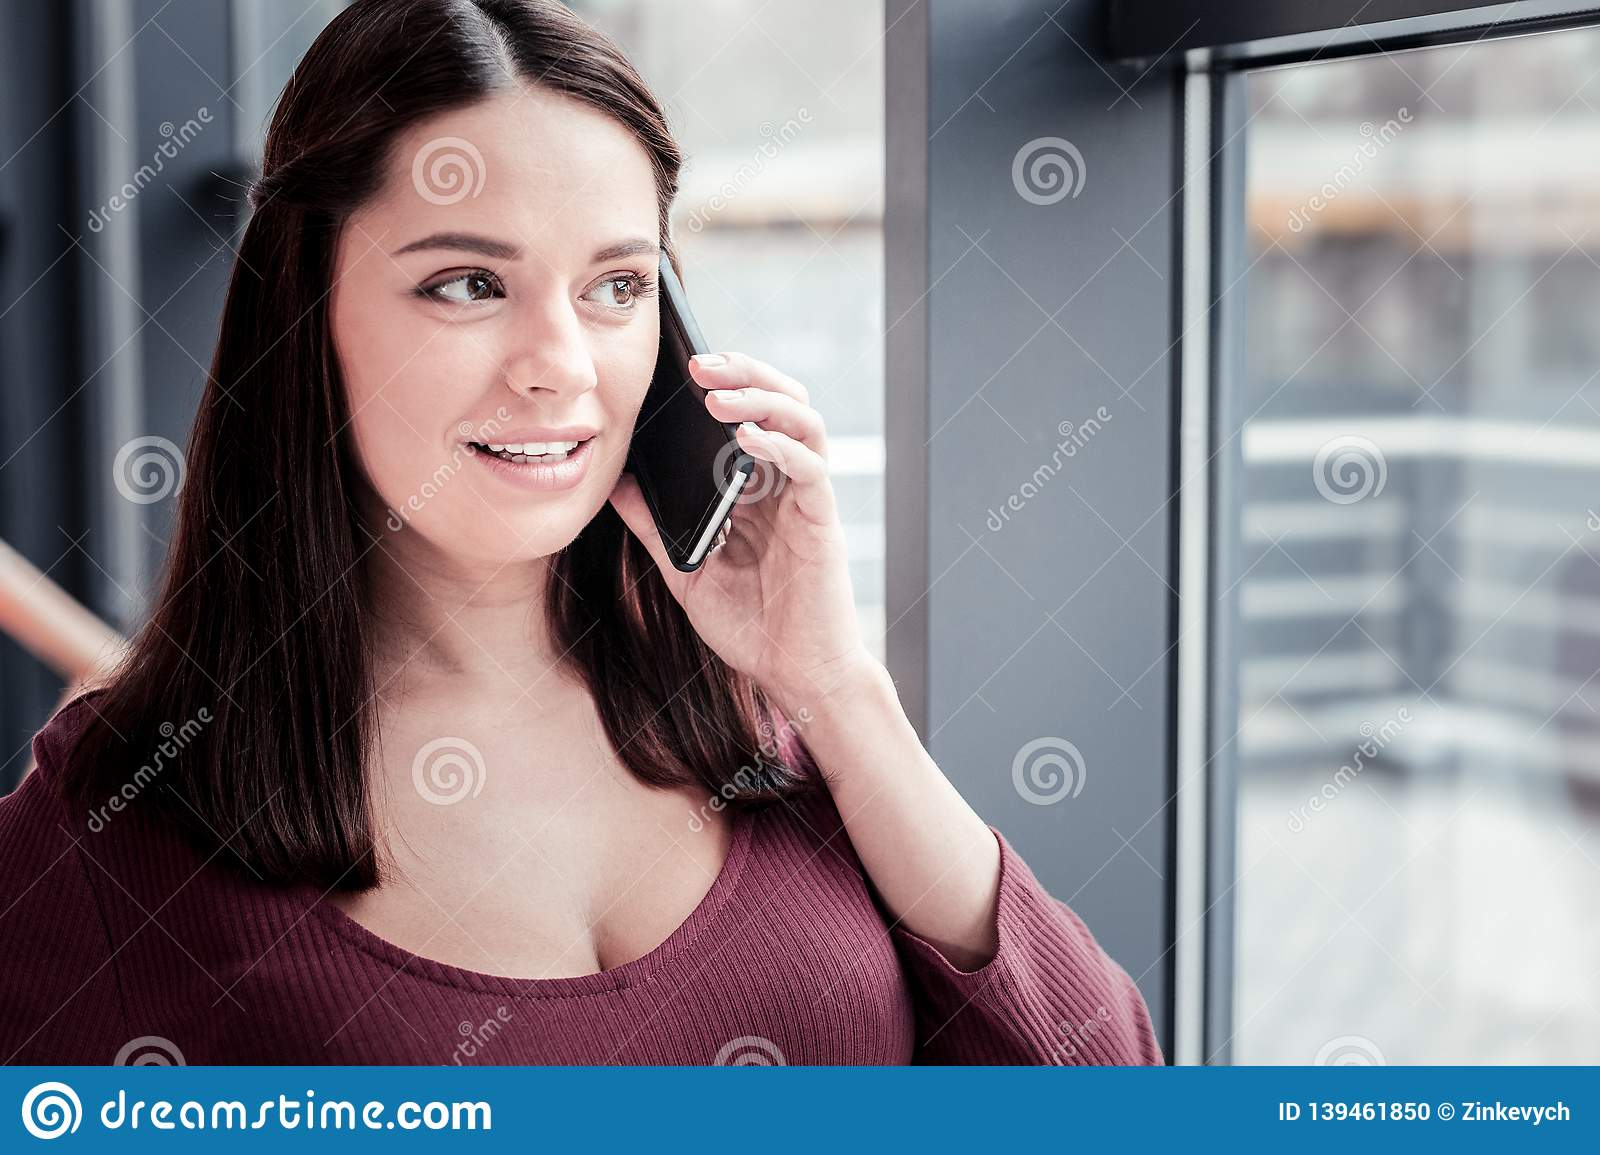 Dark-haired cute woman feeling fascinated while talking by phone